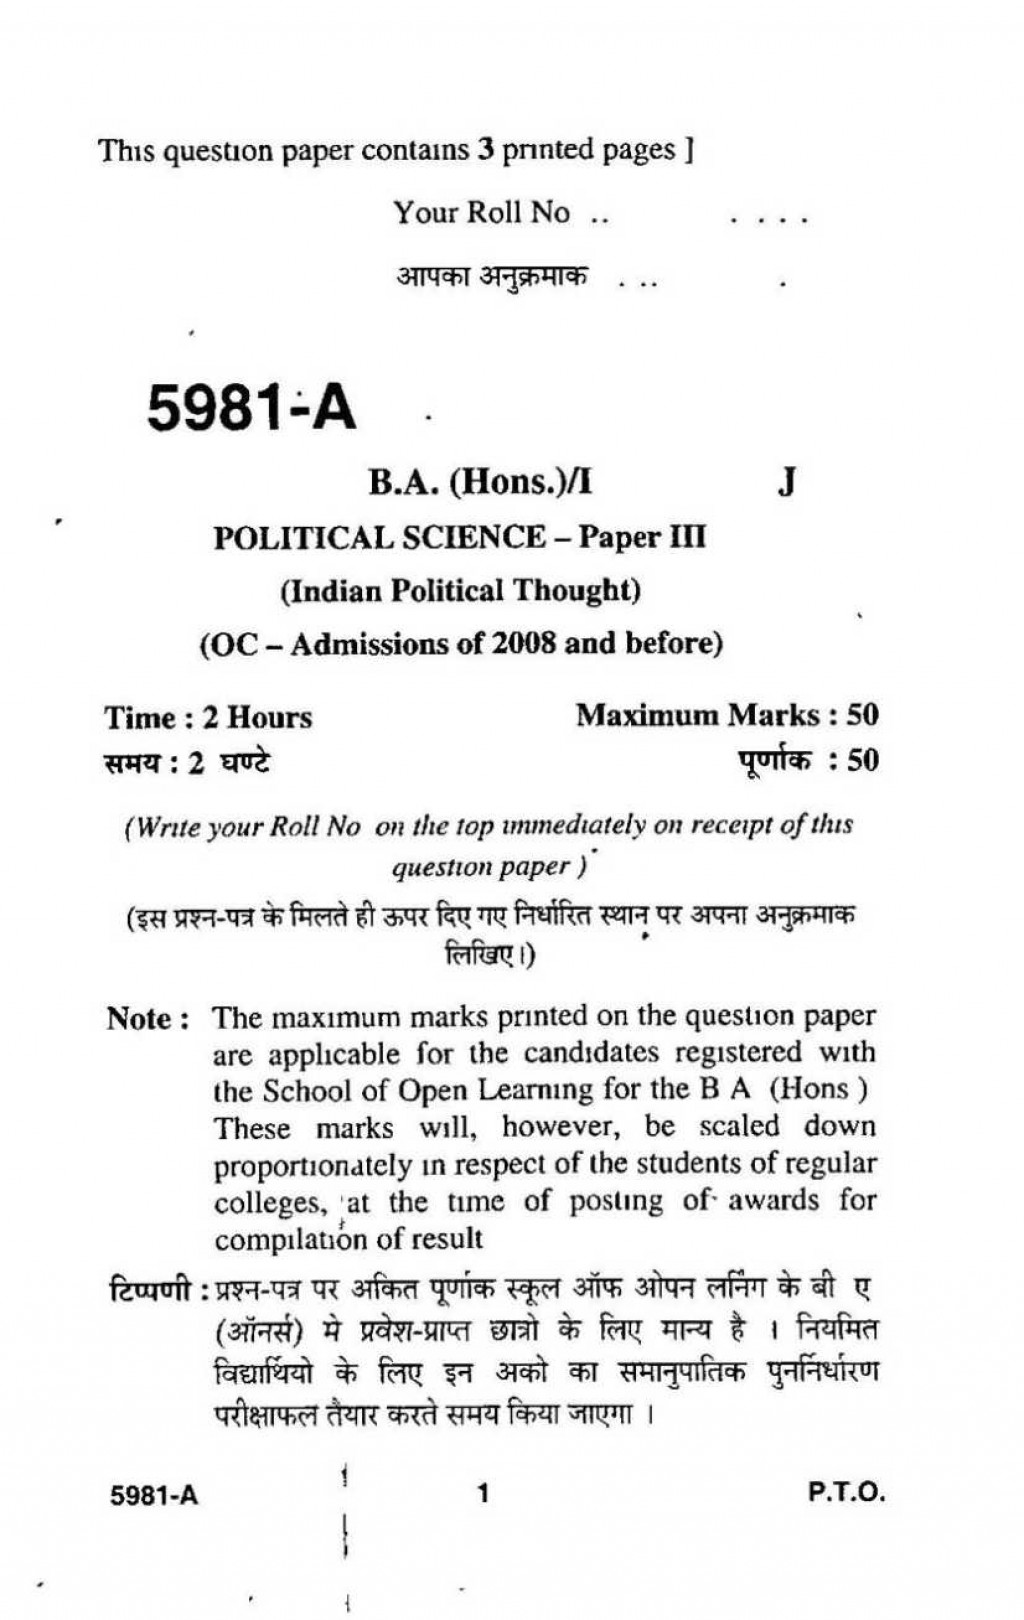 015 Essay Example How Writelitical Science Delhi University First Year Previous Years Question Paper Prompts Philosophy Topics Easy Good Theory For Argument Argumentative Economy Persuasive Stirring Political Party Questions Geography Large